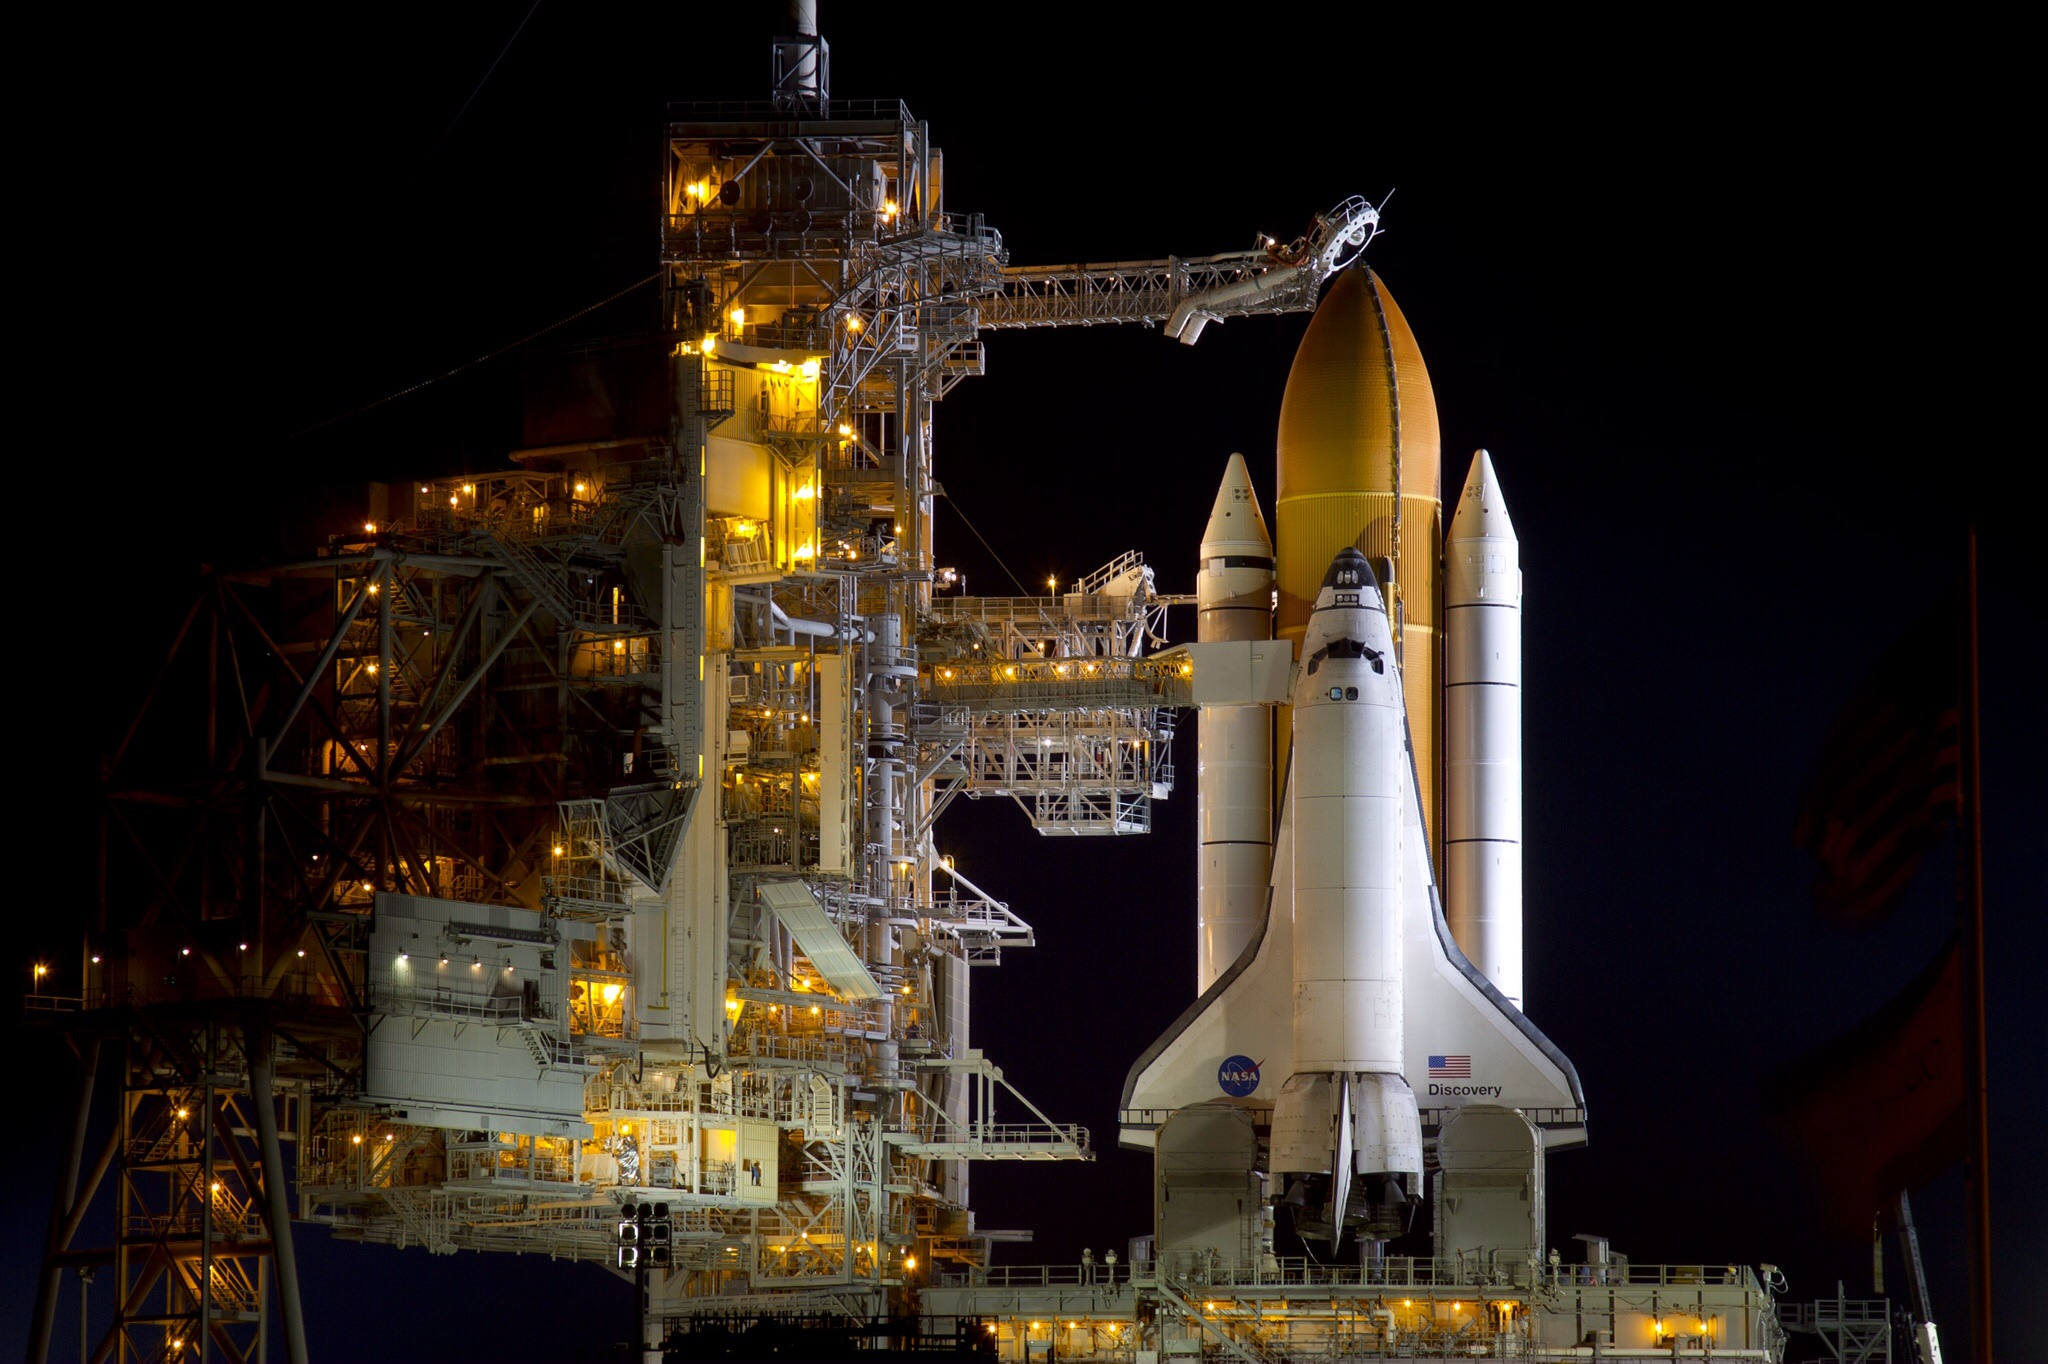 Space Shuttle Discovery: On Launch Pad